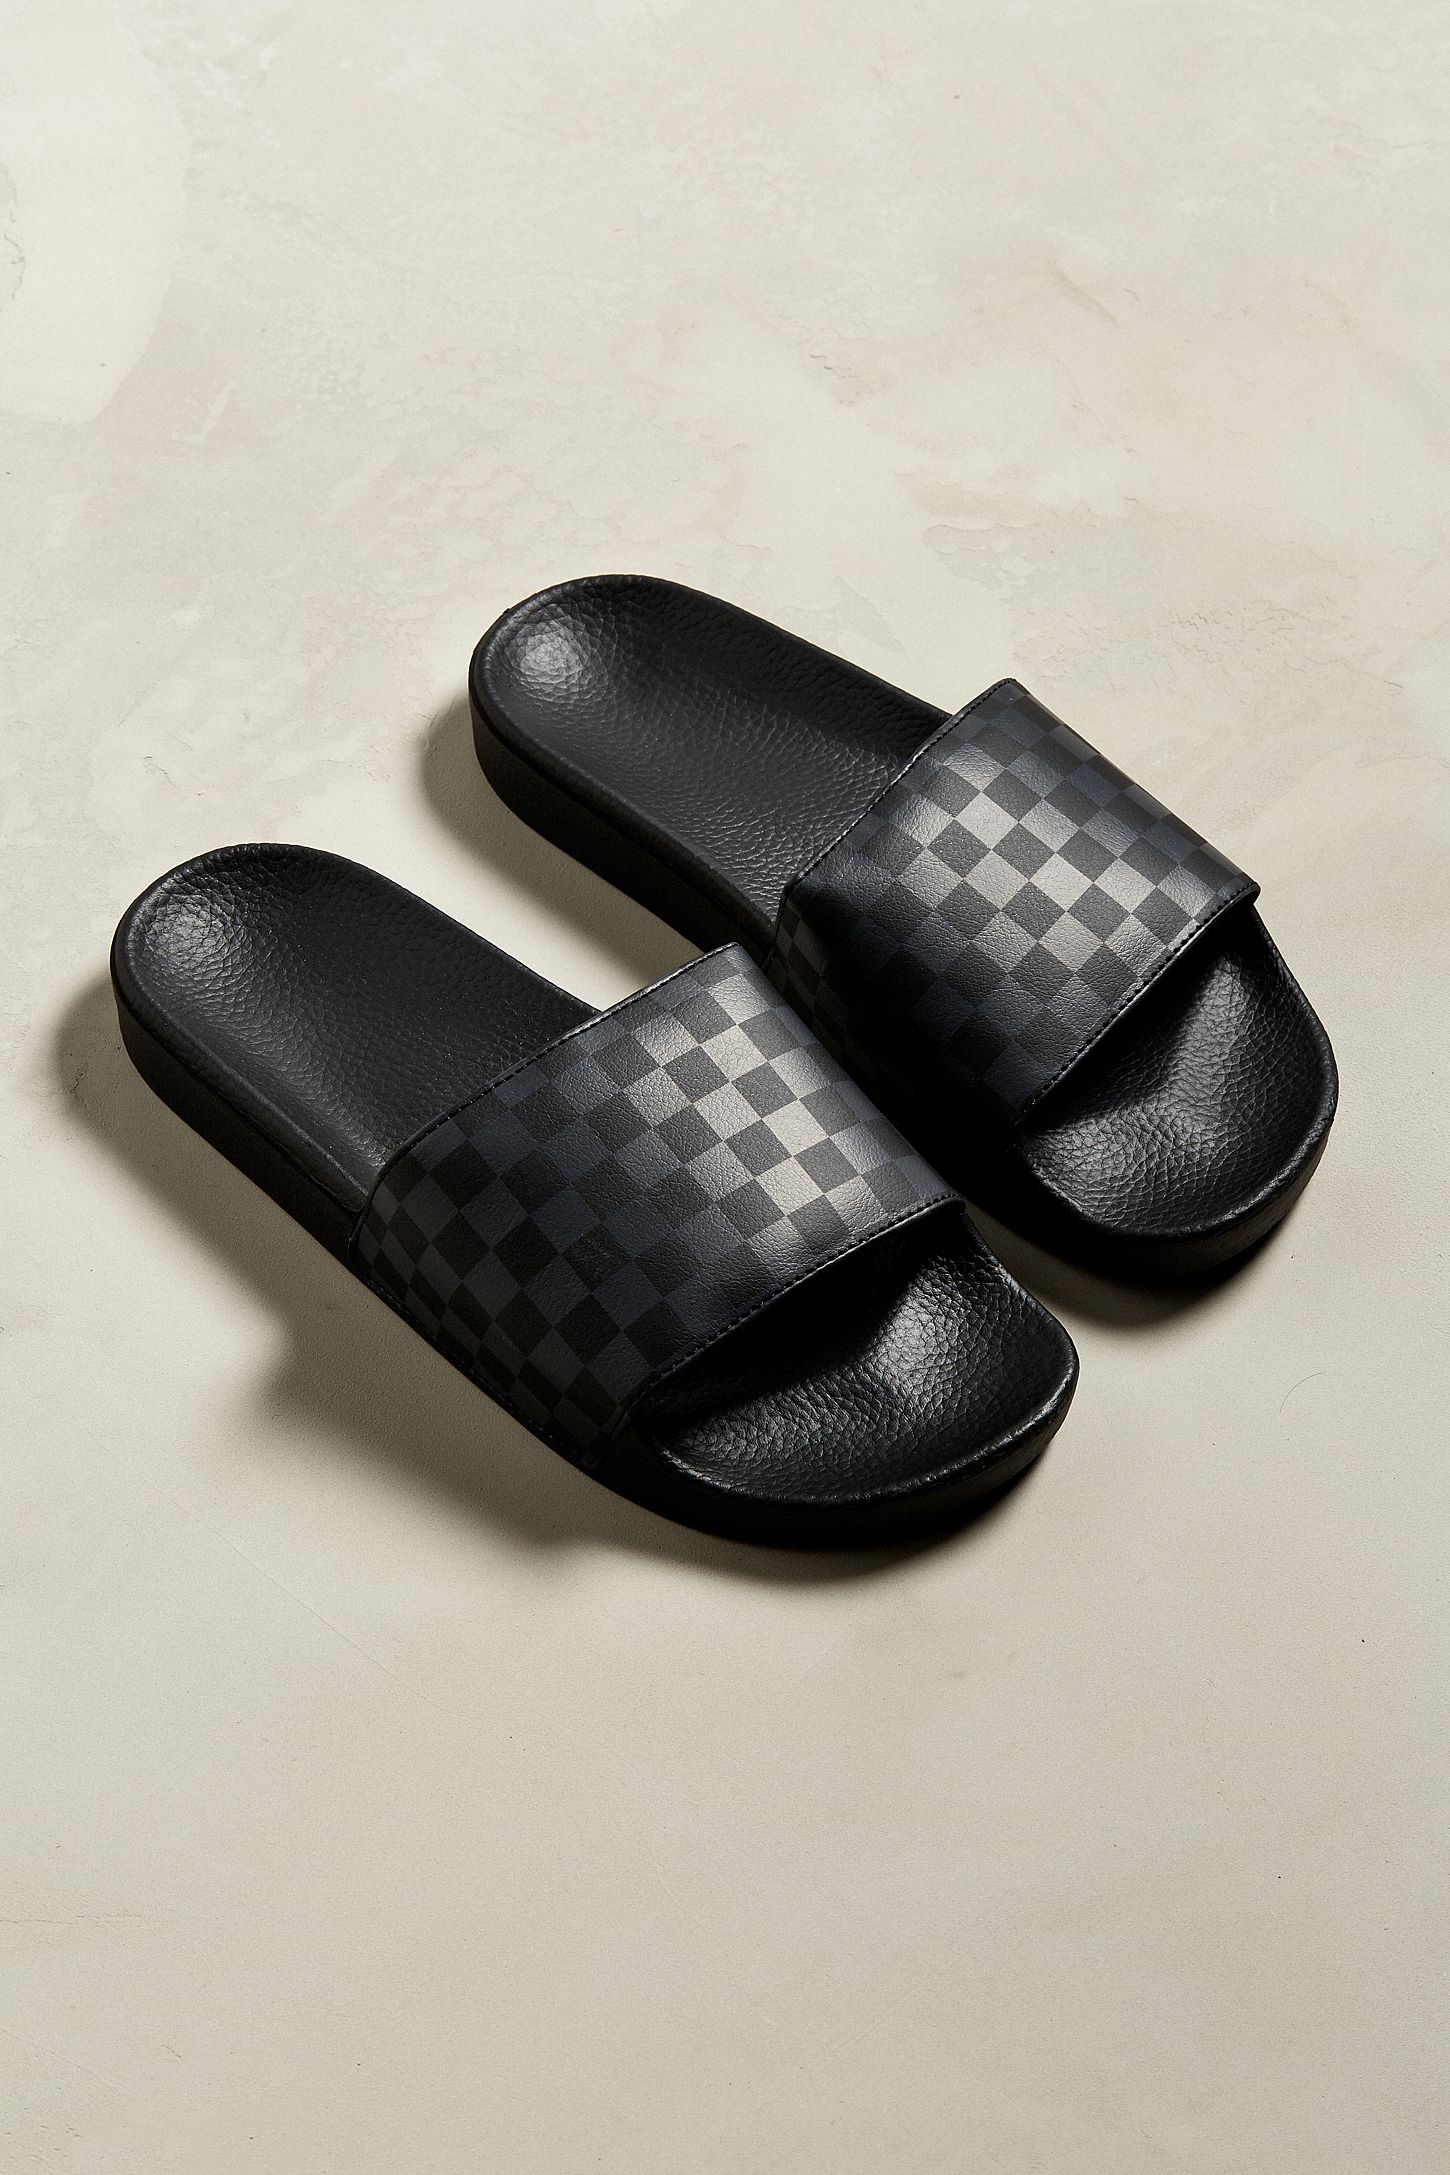 748c55a7ff92 Vans Slide-On Checkerboard Sandal